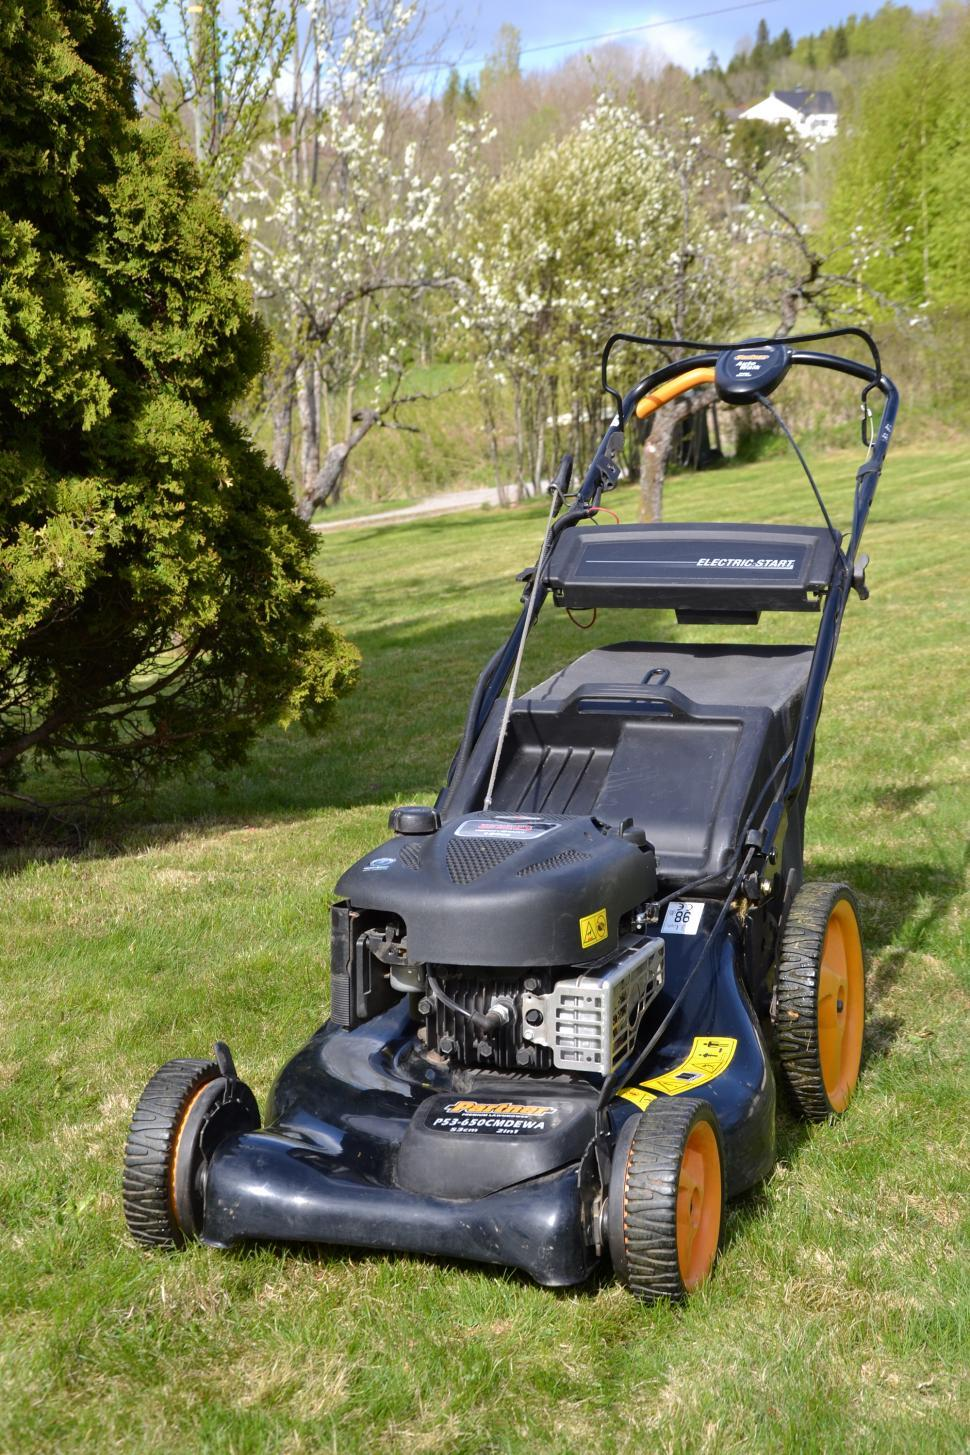 Download Free Stock HD Photo of Modern Lawn mower Online